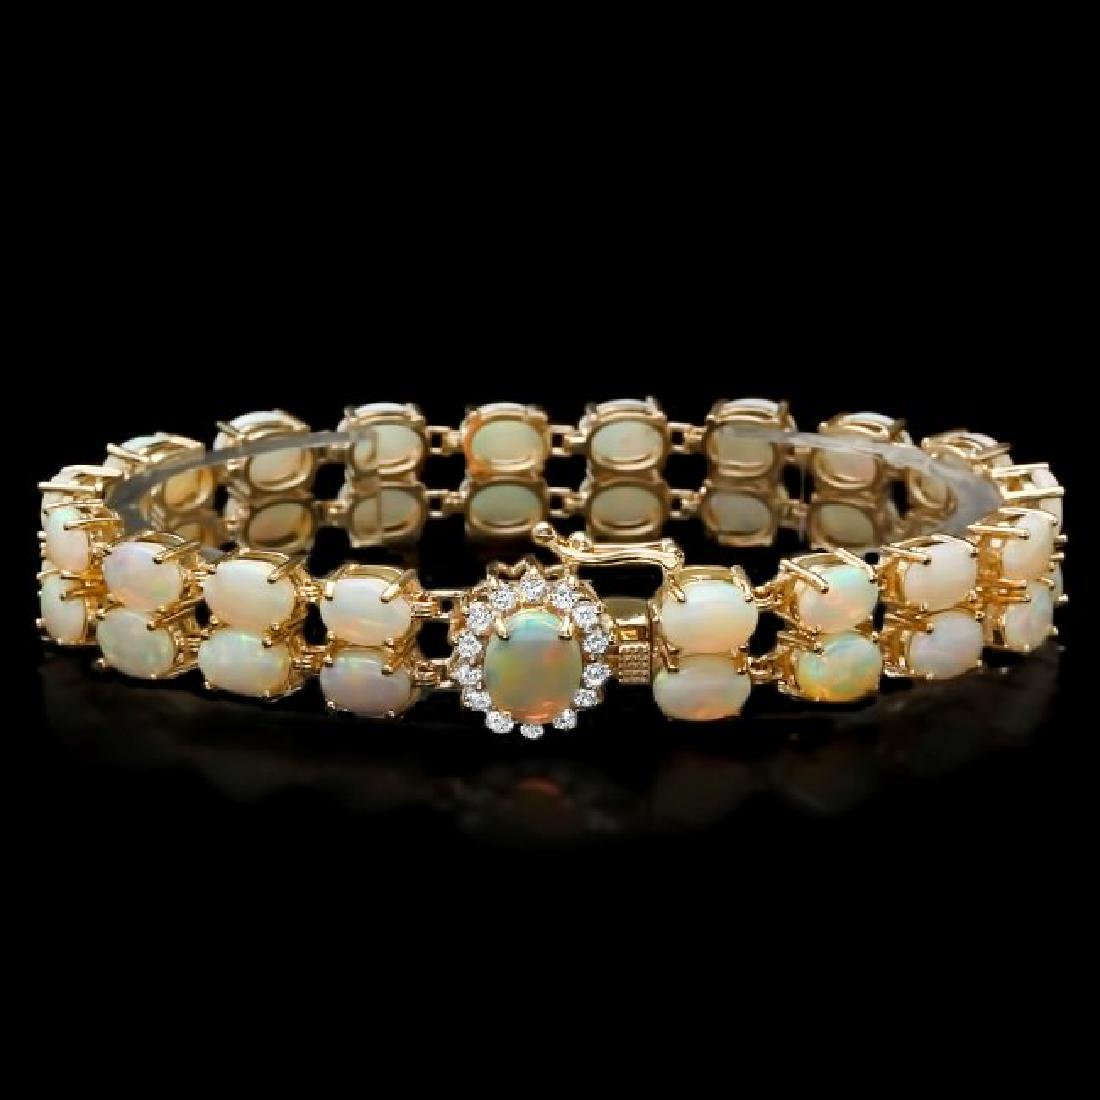 14k Yellow Gold 17ct Opal 0.50ct Diamond Bracelet